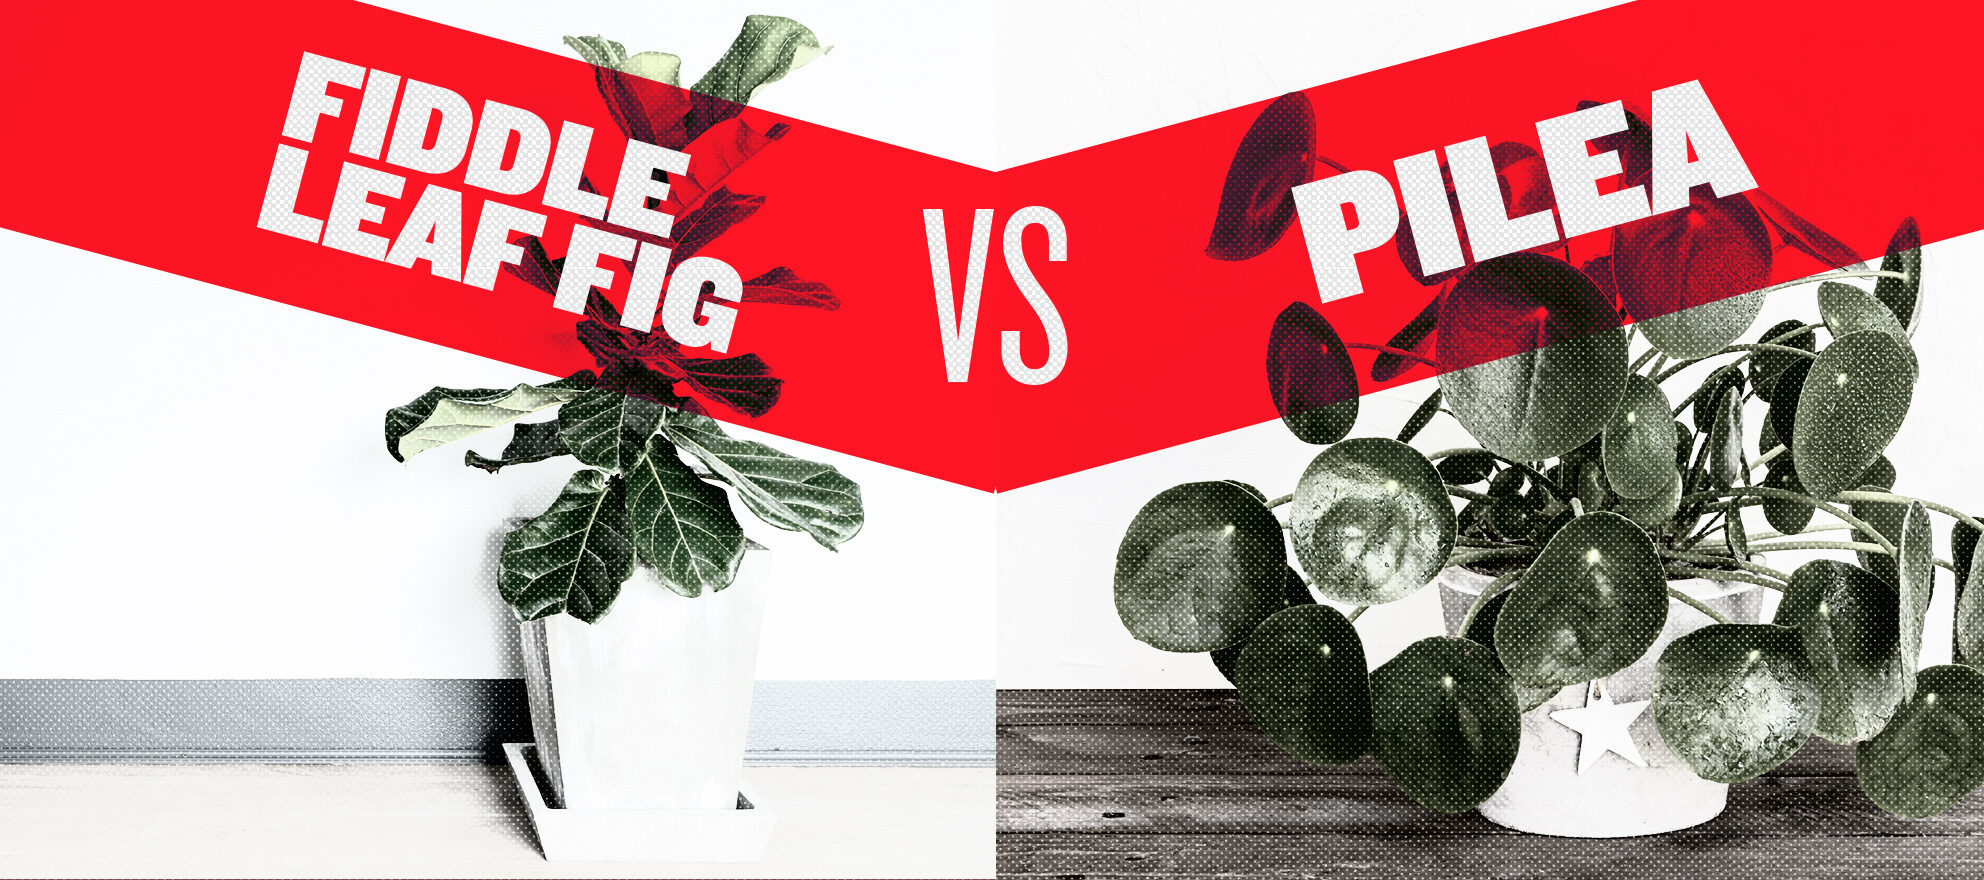 The 2 'it' houseplants sure to activate your green thumb